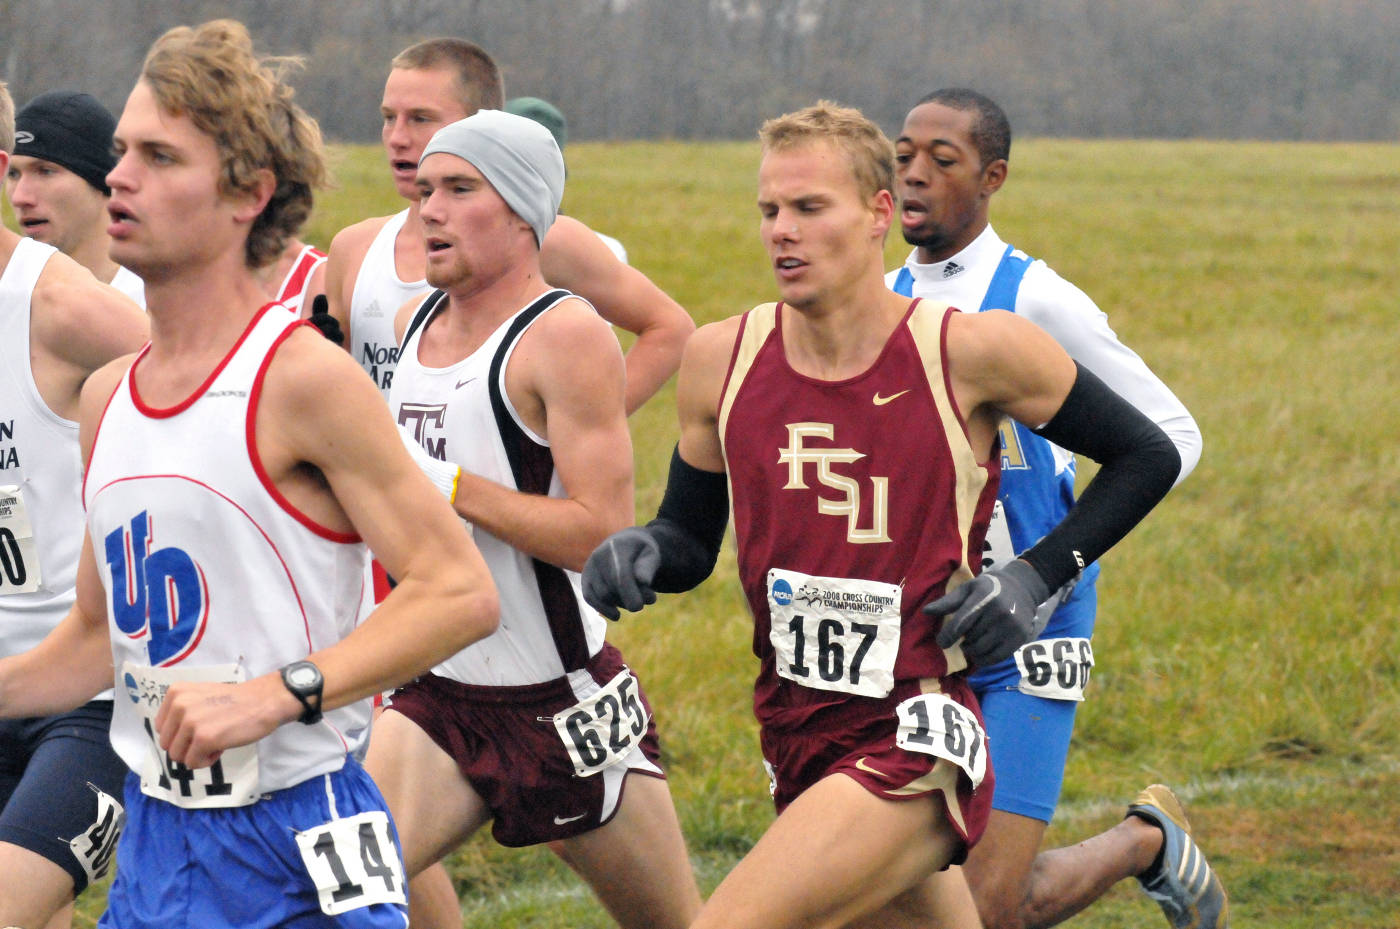 Trey Andrews at the 2008 NCAA Cross Country Nationals.